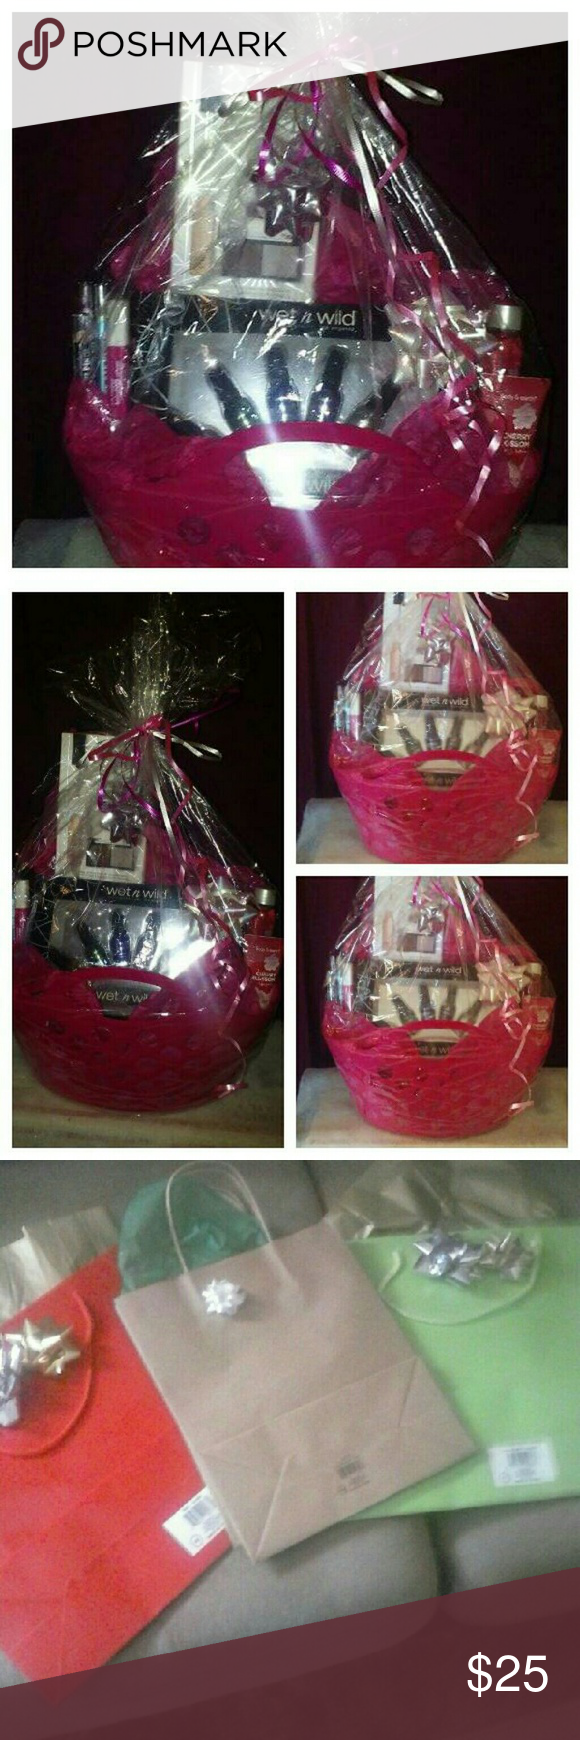 Gift Basket Gift Basket filled with lots of different types of beauty products comes with a gift bag ready to give as a gift. Other